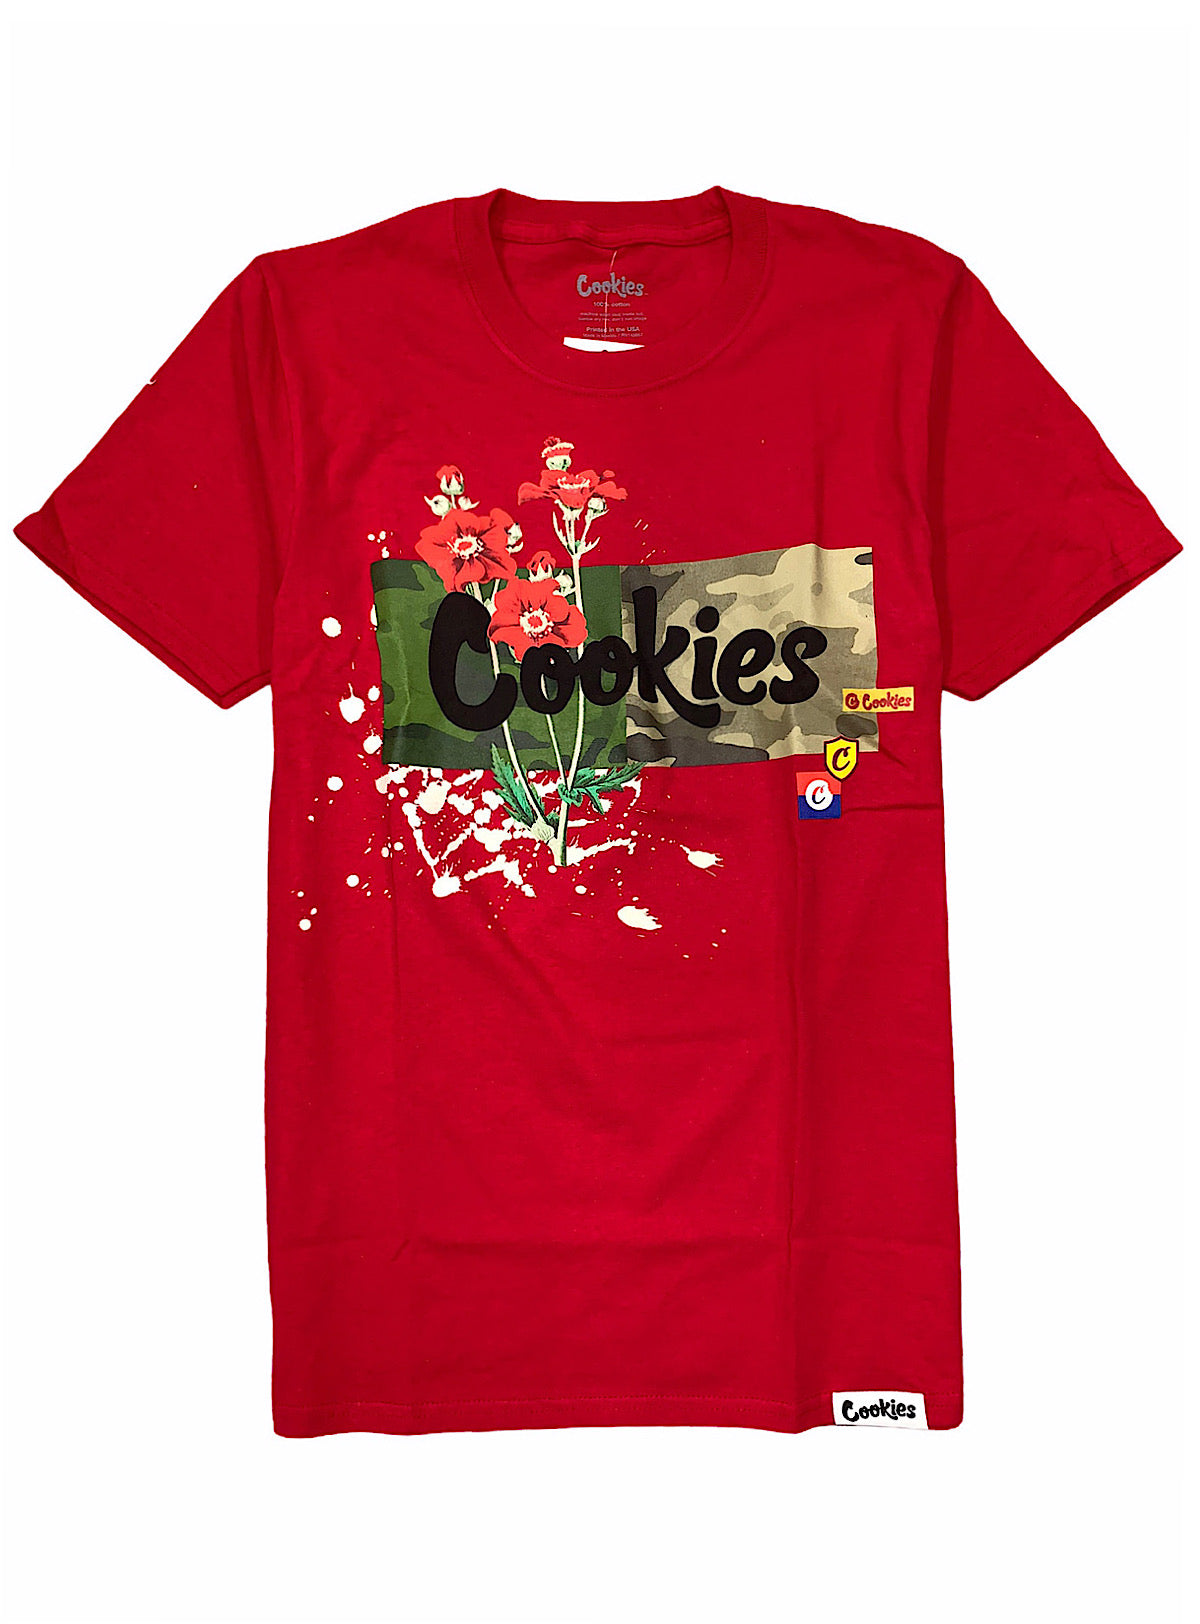 Cookies T-Shirt - Backcountry Logo - Red - 1546T4309